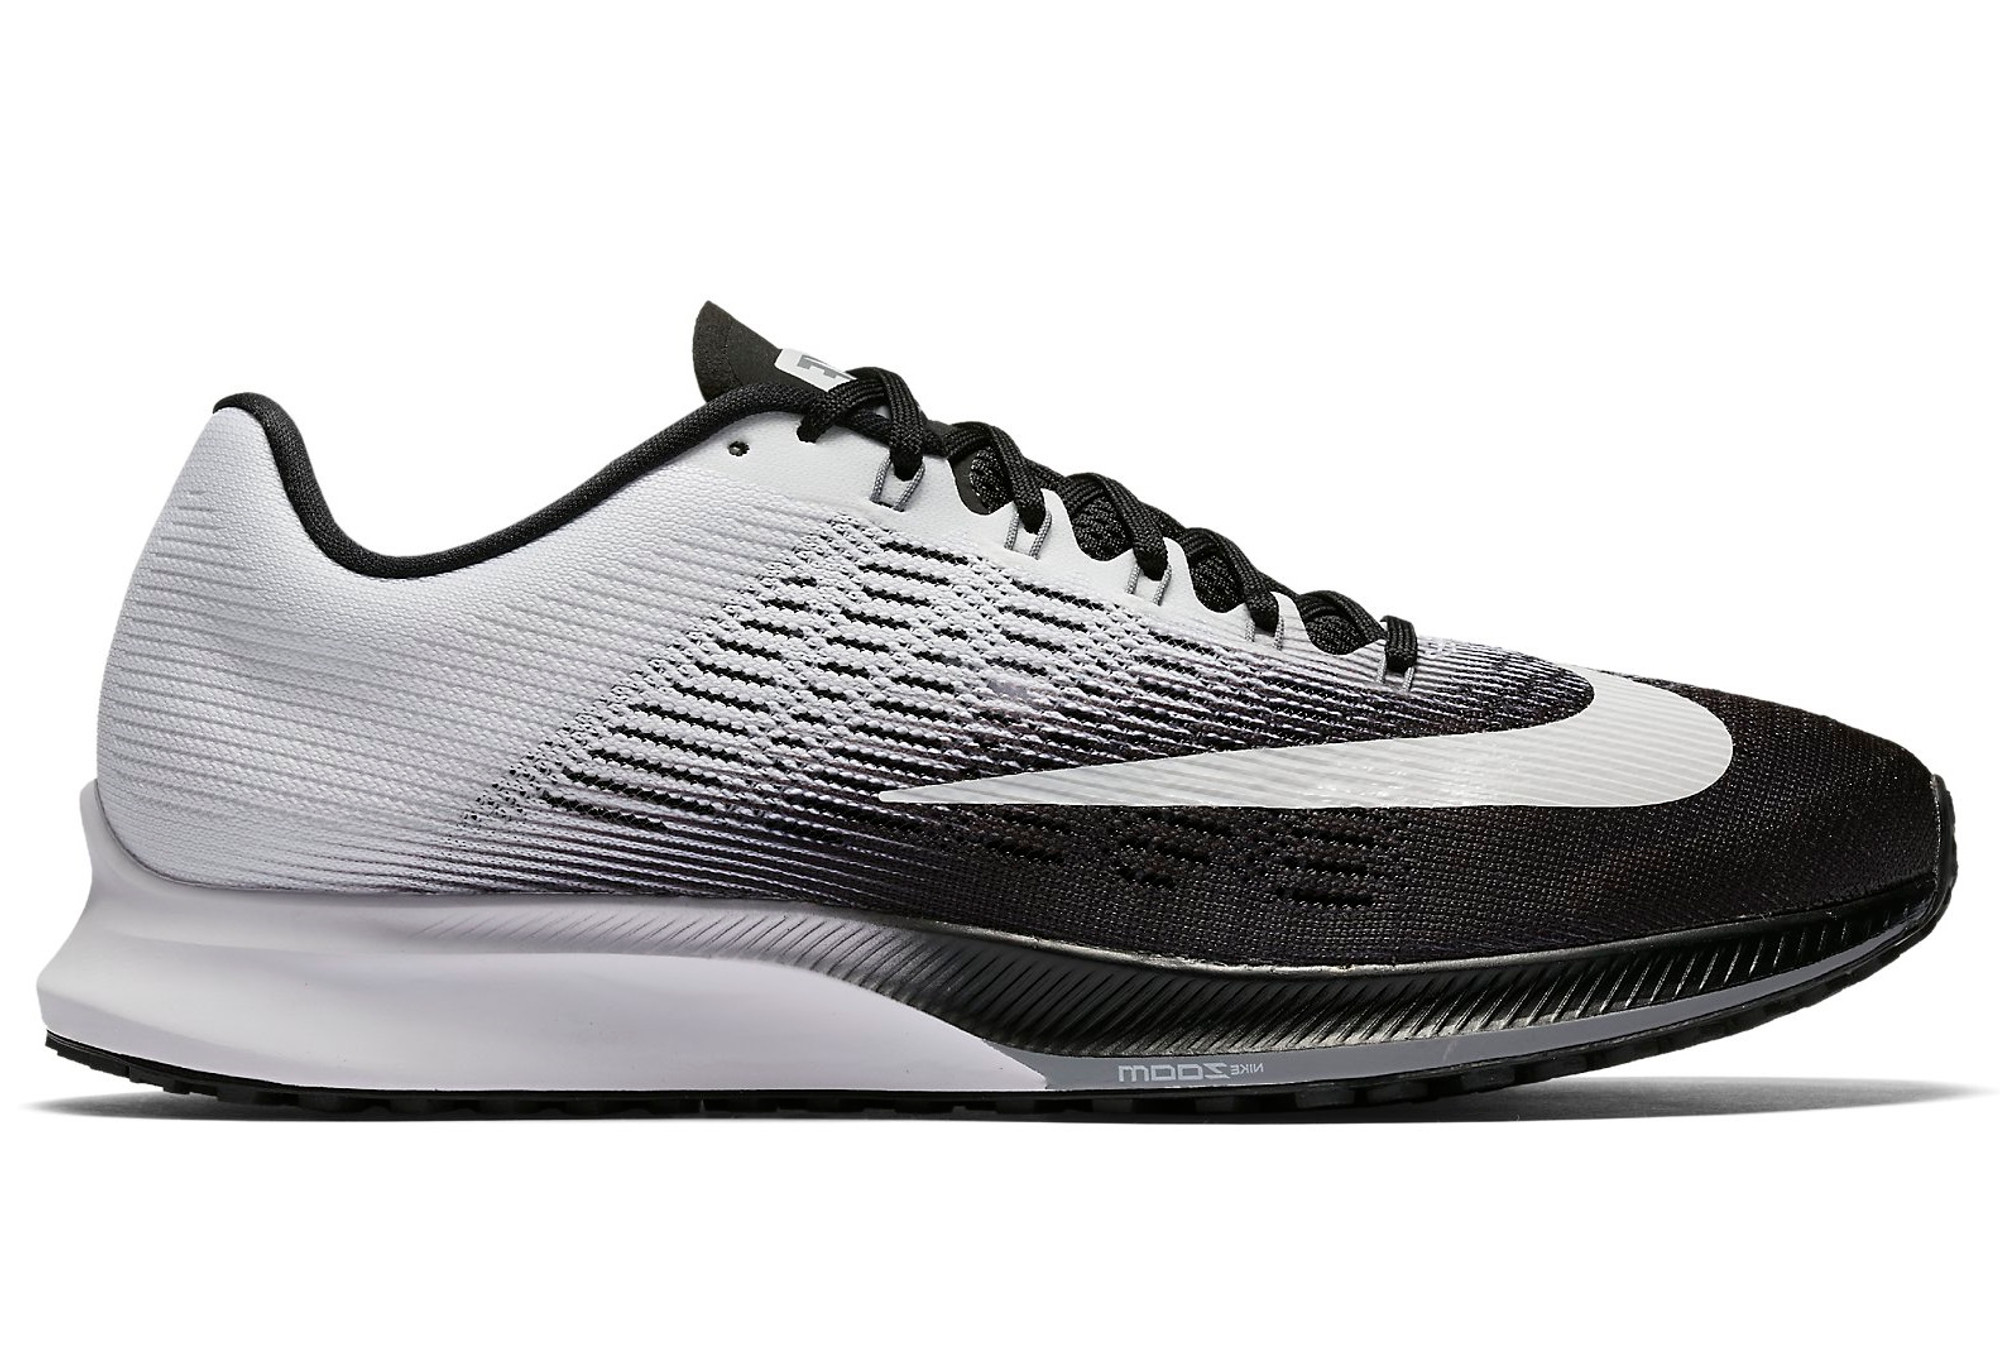 nike air zoom elite 9 vs 10